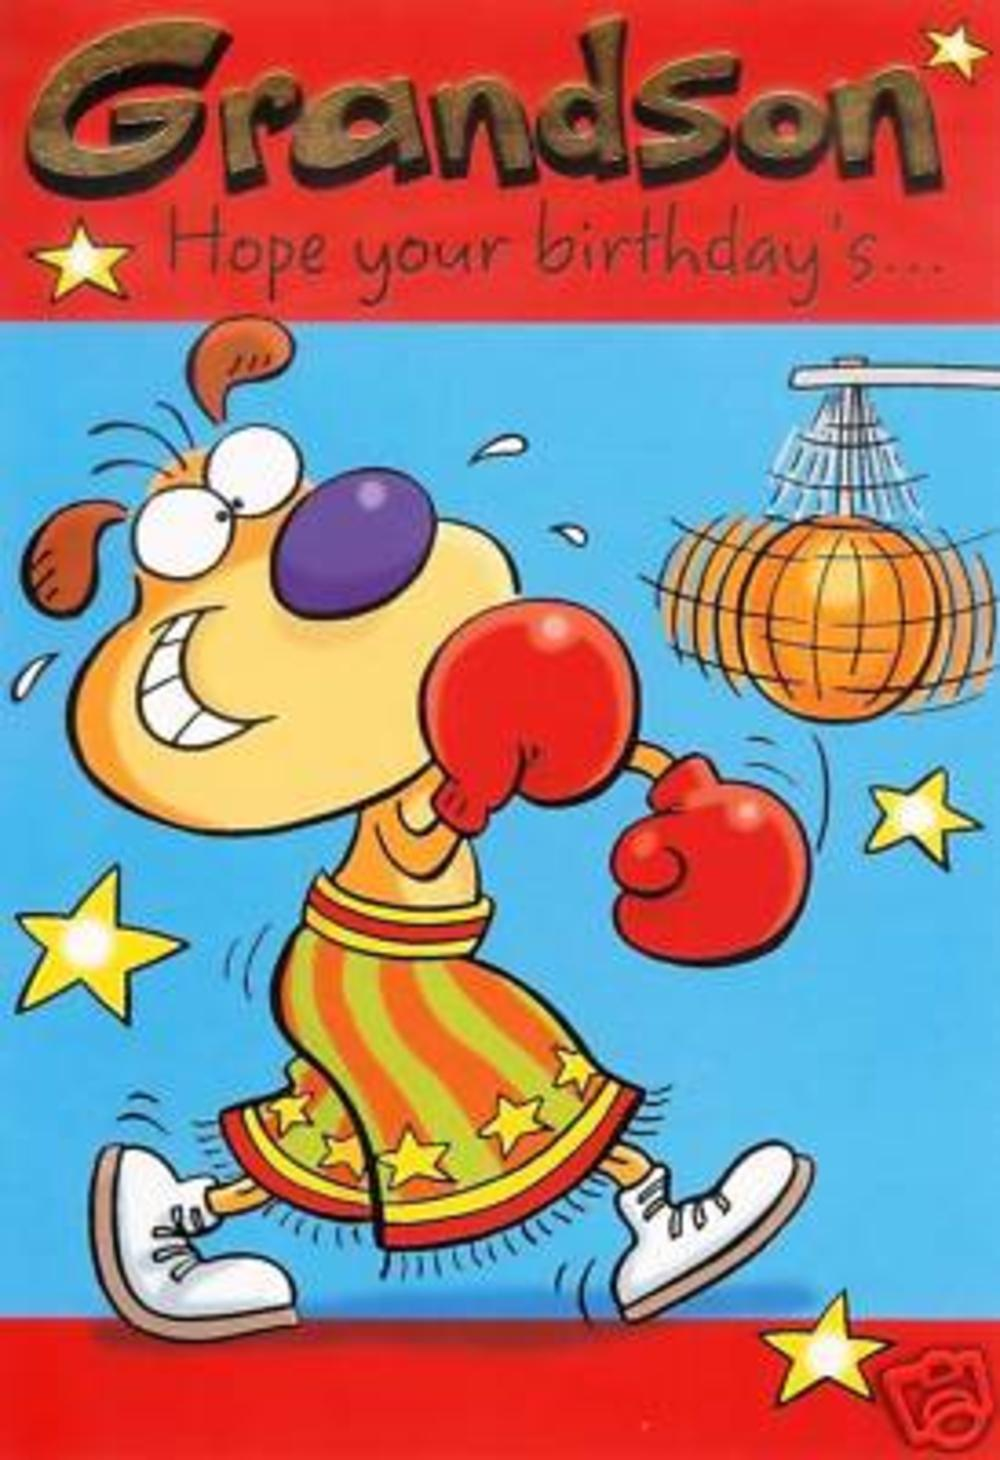 grandson hope its a knock out birthday card  cards  love kates, Birthday card